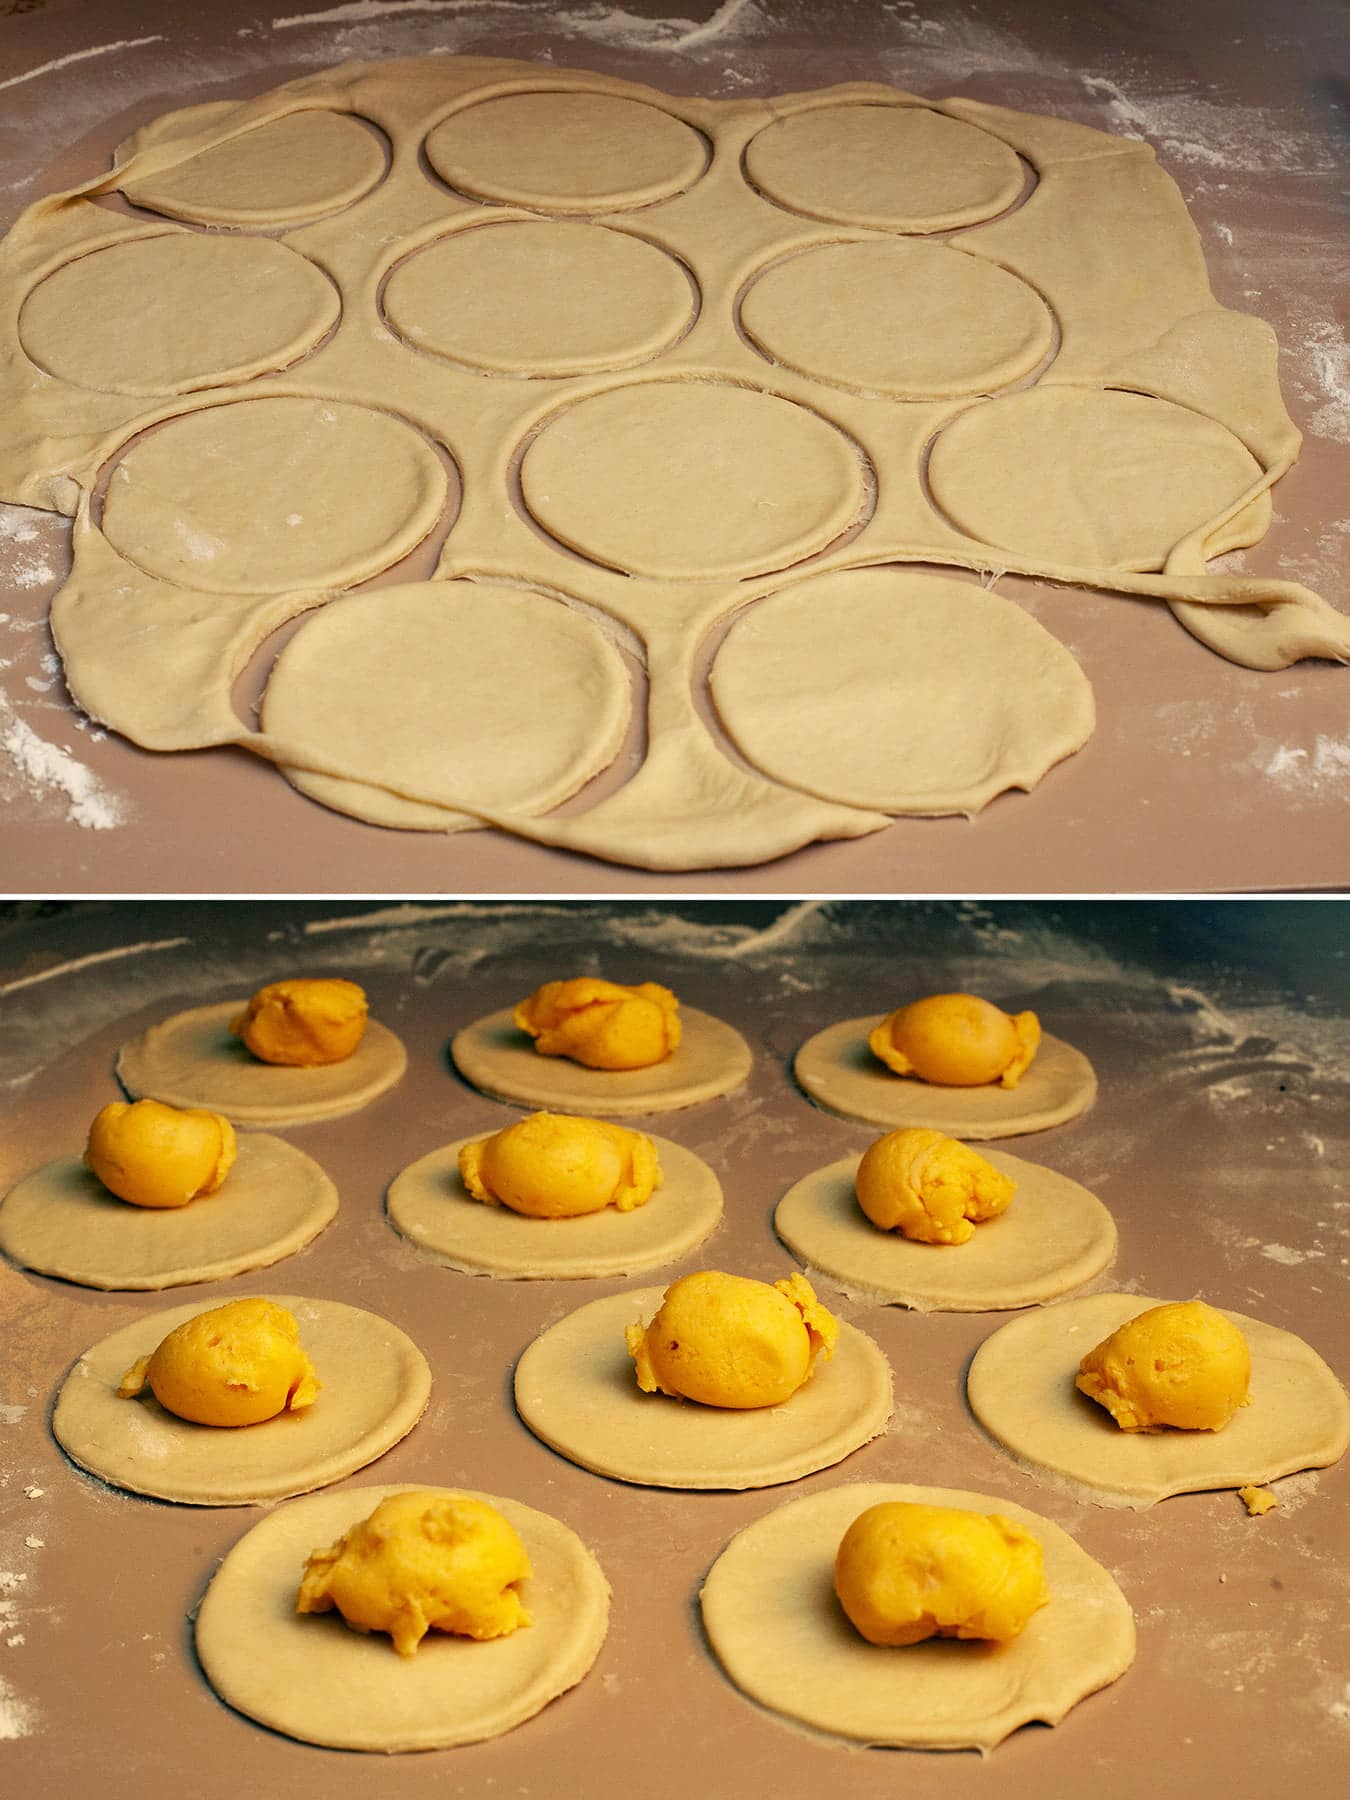 A 2 photo compilation image, showing rolled out dough with rounds cut in it, and rounds of dough with little balls of cheesy potatoes on each.